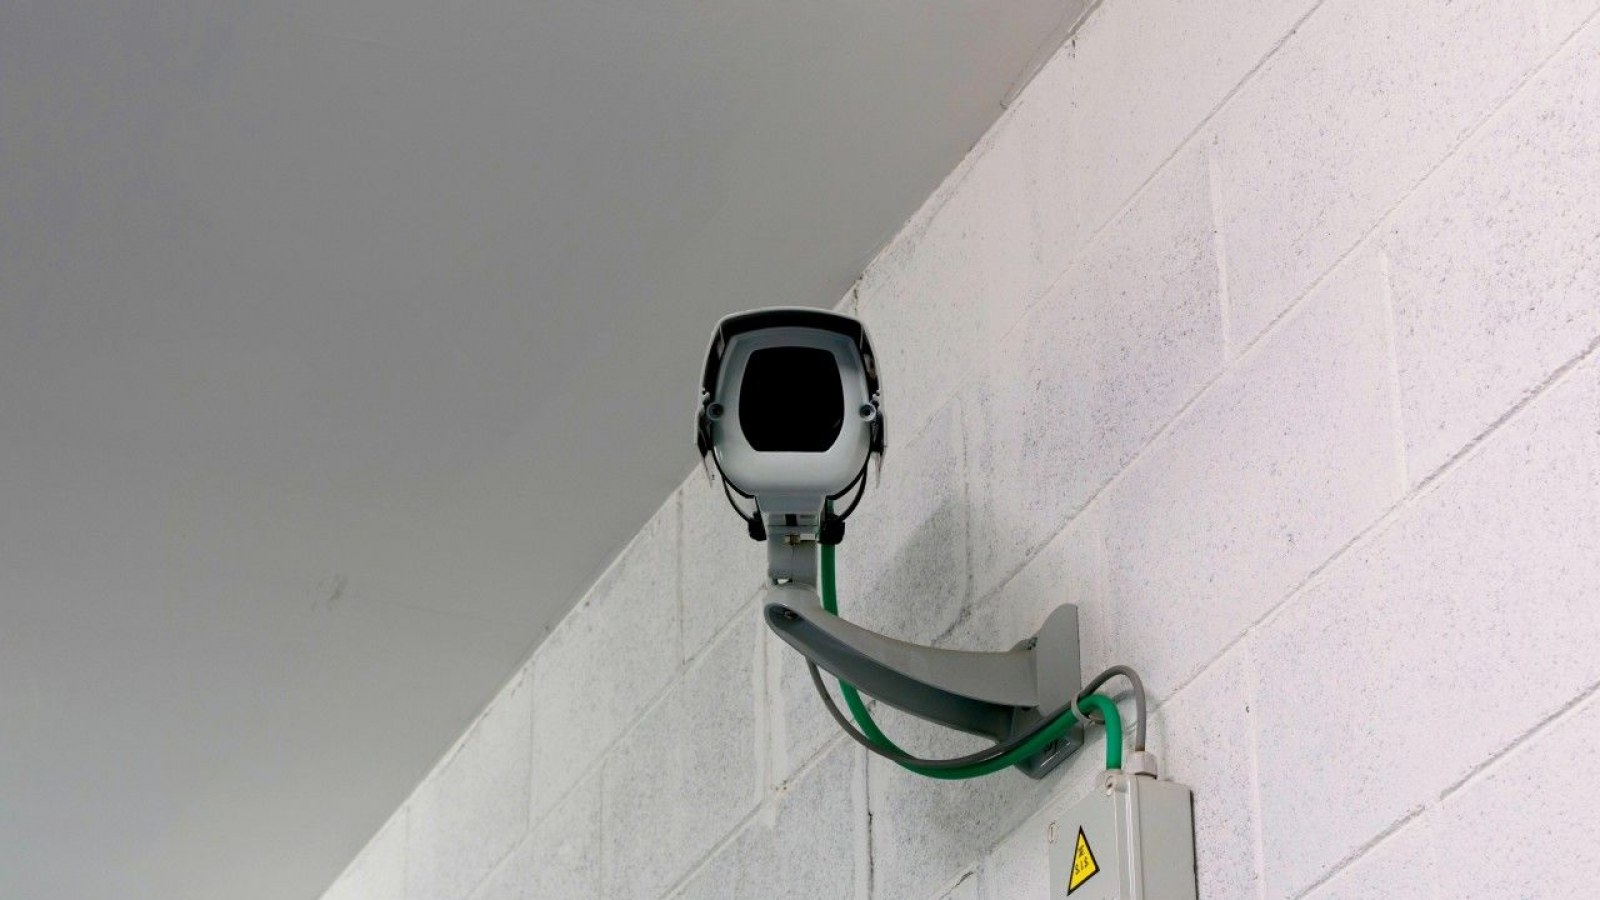 Biometric Surveillance Means Someone Is Always Watching